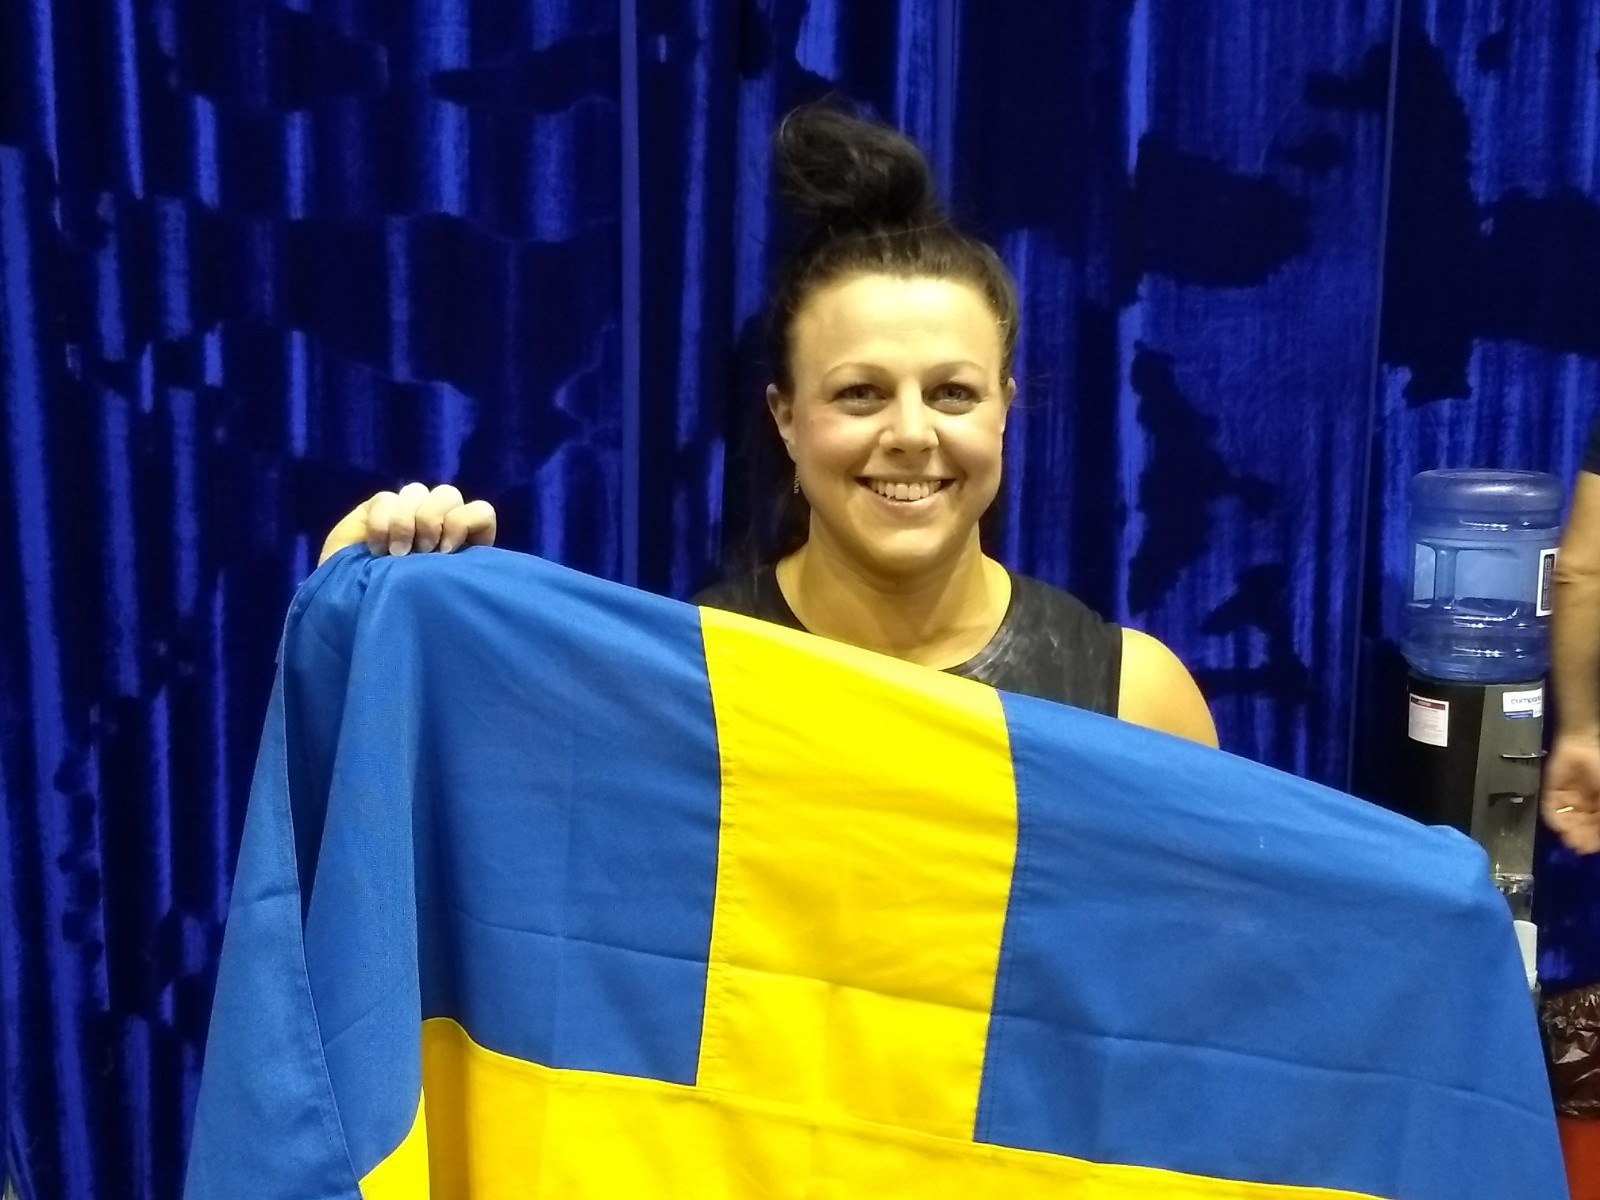 Strenius is first Swedish woman - and first CrossFit weightlifter - to win European gold